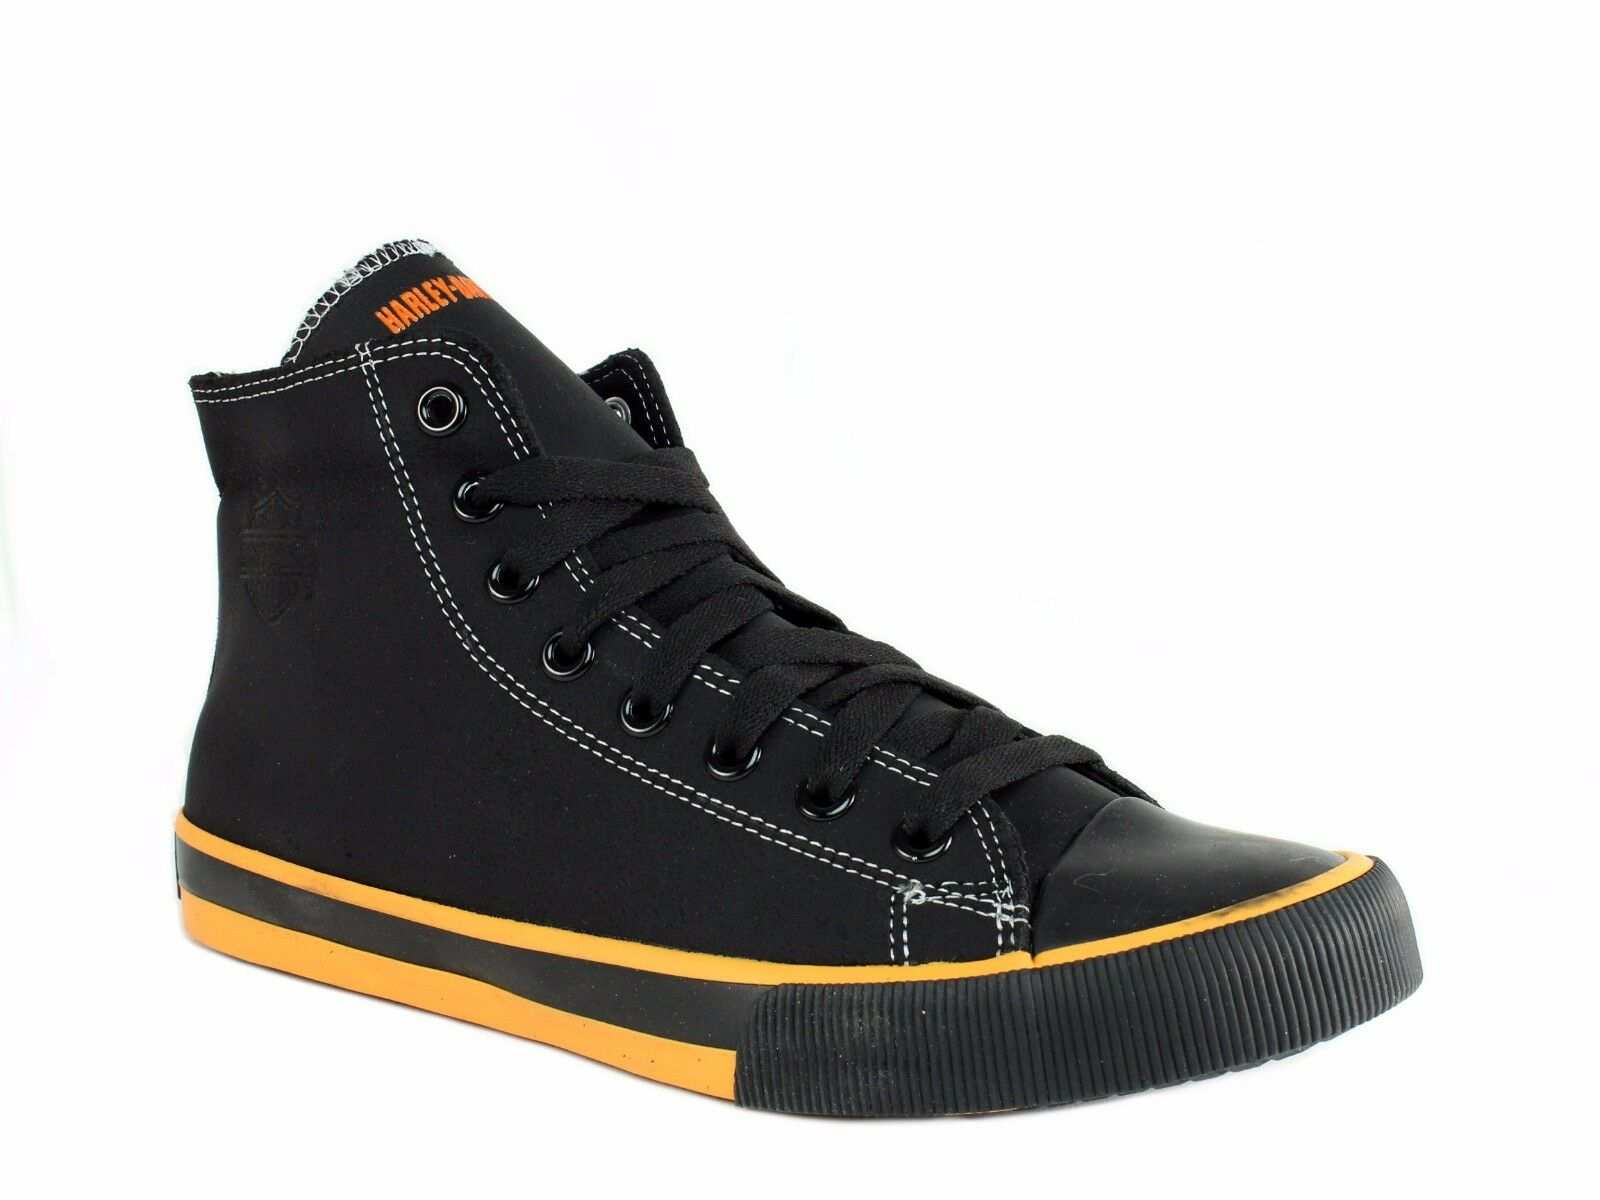 Harley Davidson NATHAN HI TOP Homme Motorcycle Noir Orange Leather Sneakers